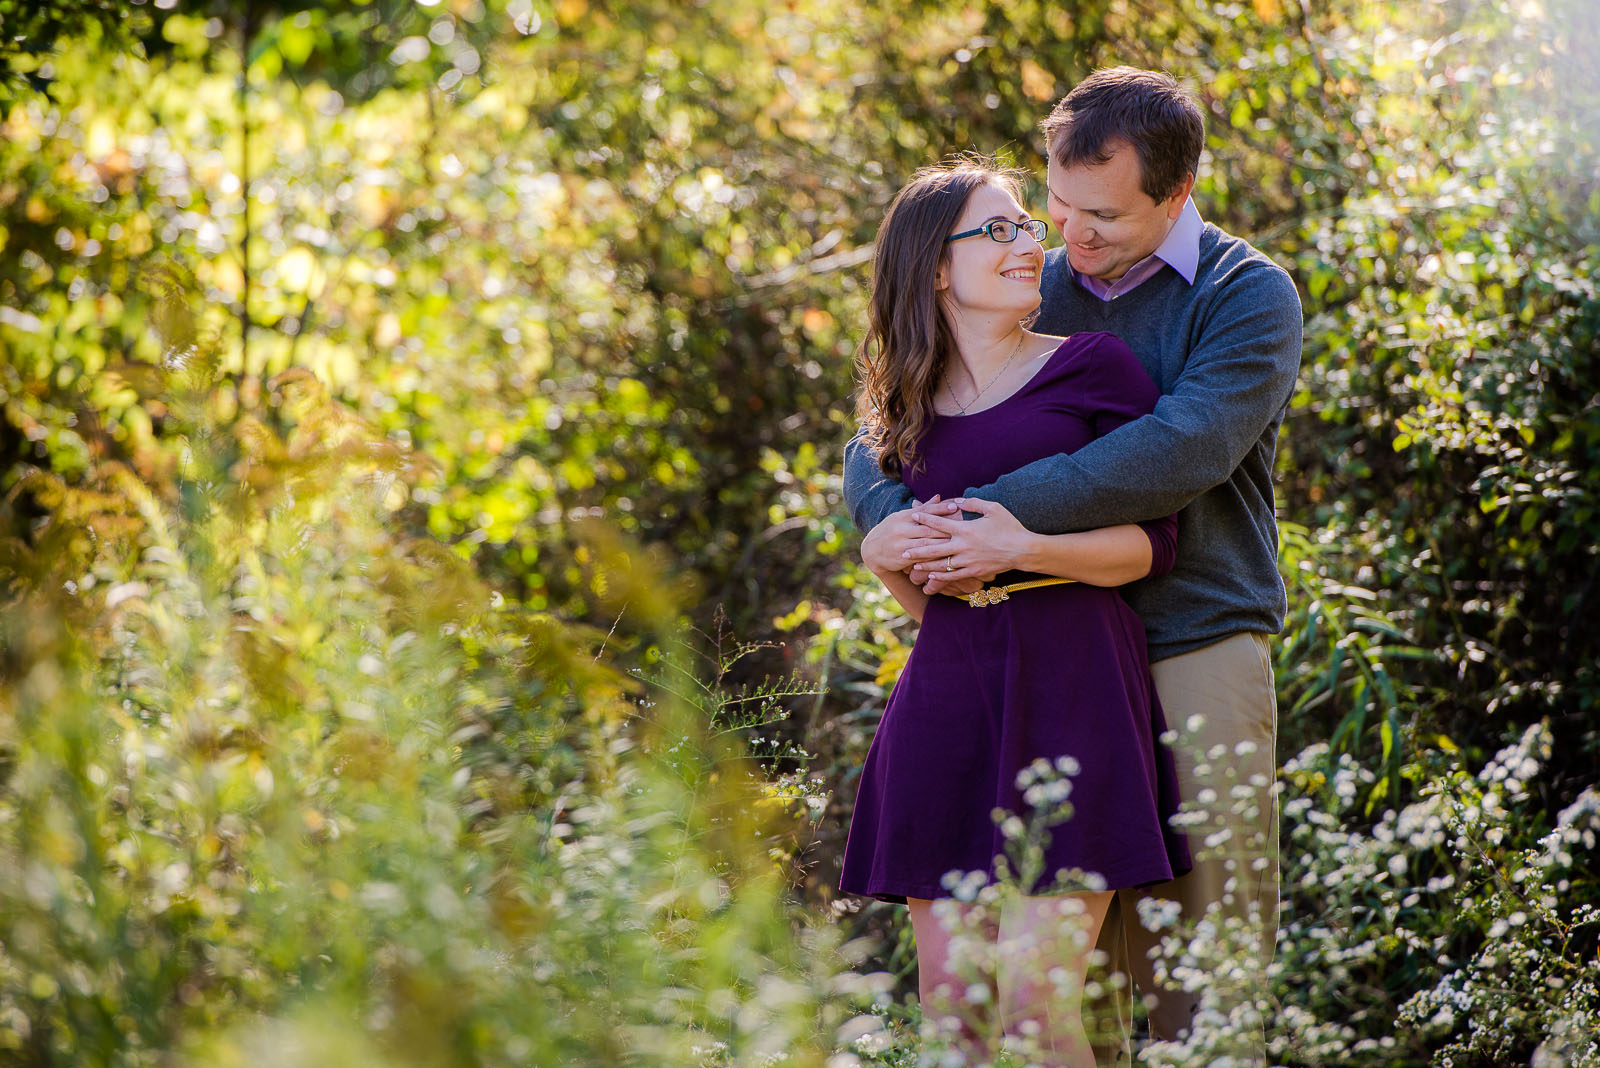 Eric_and_Christy_Photography_Blog_Julie_Adam-4